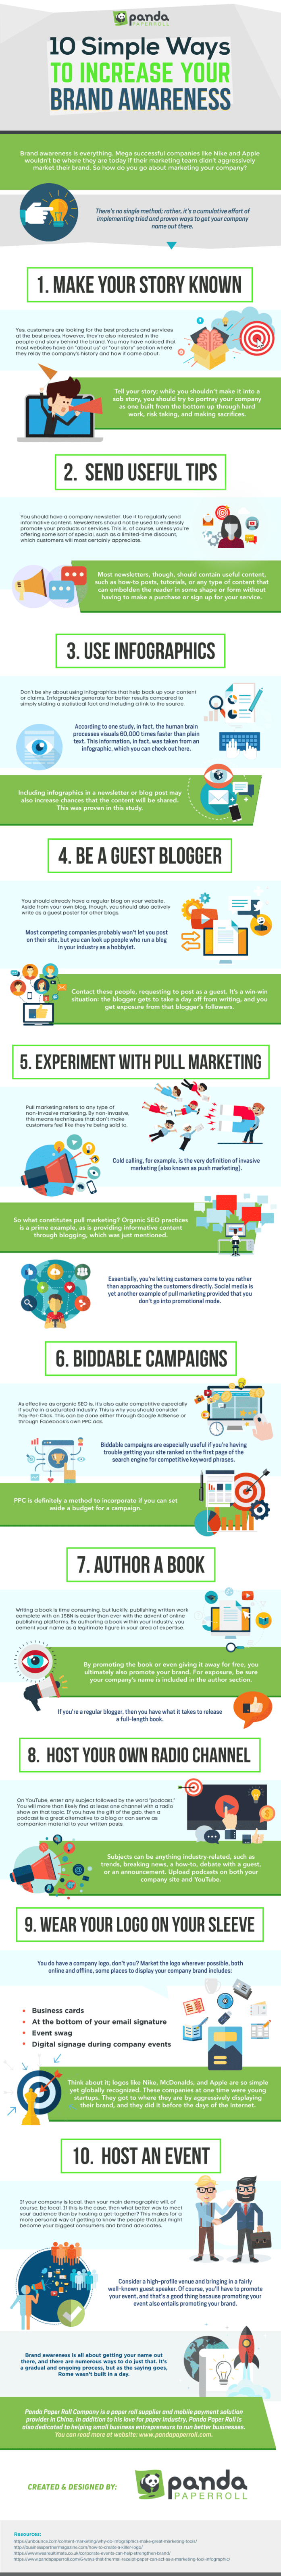 10 Simple Ways to Increase your Brand Awareness Infographic